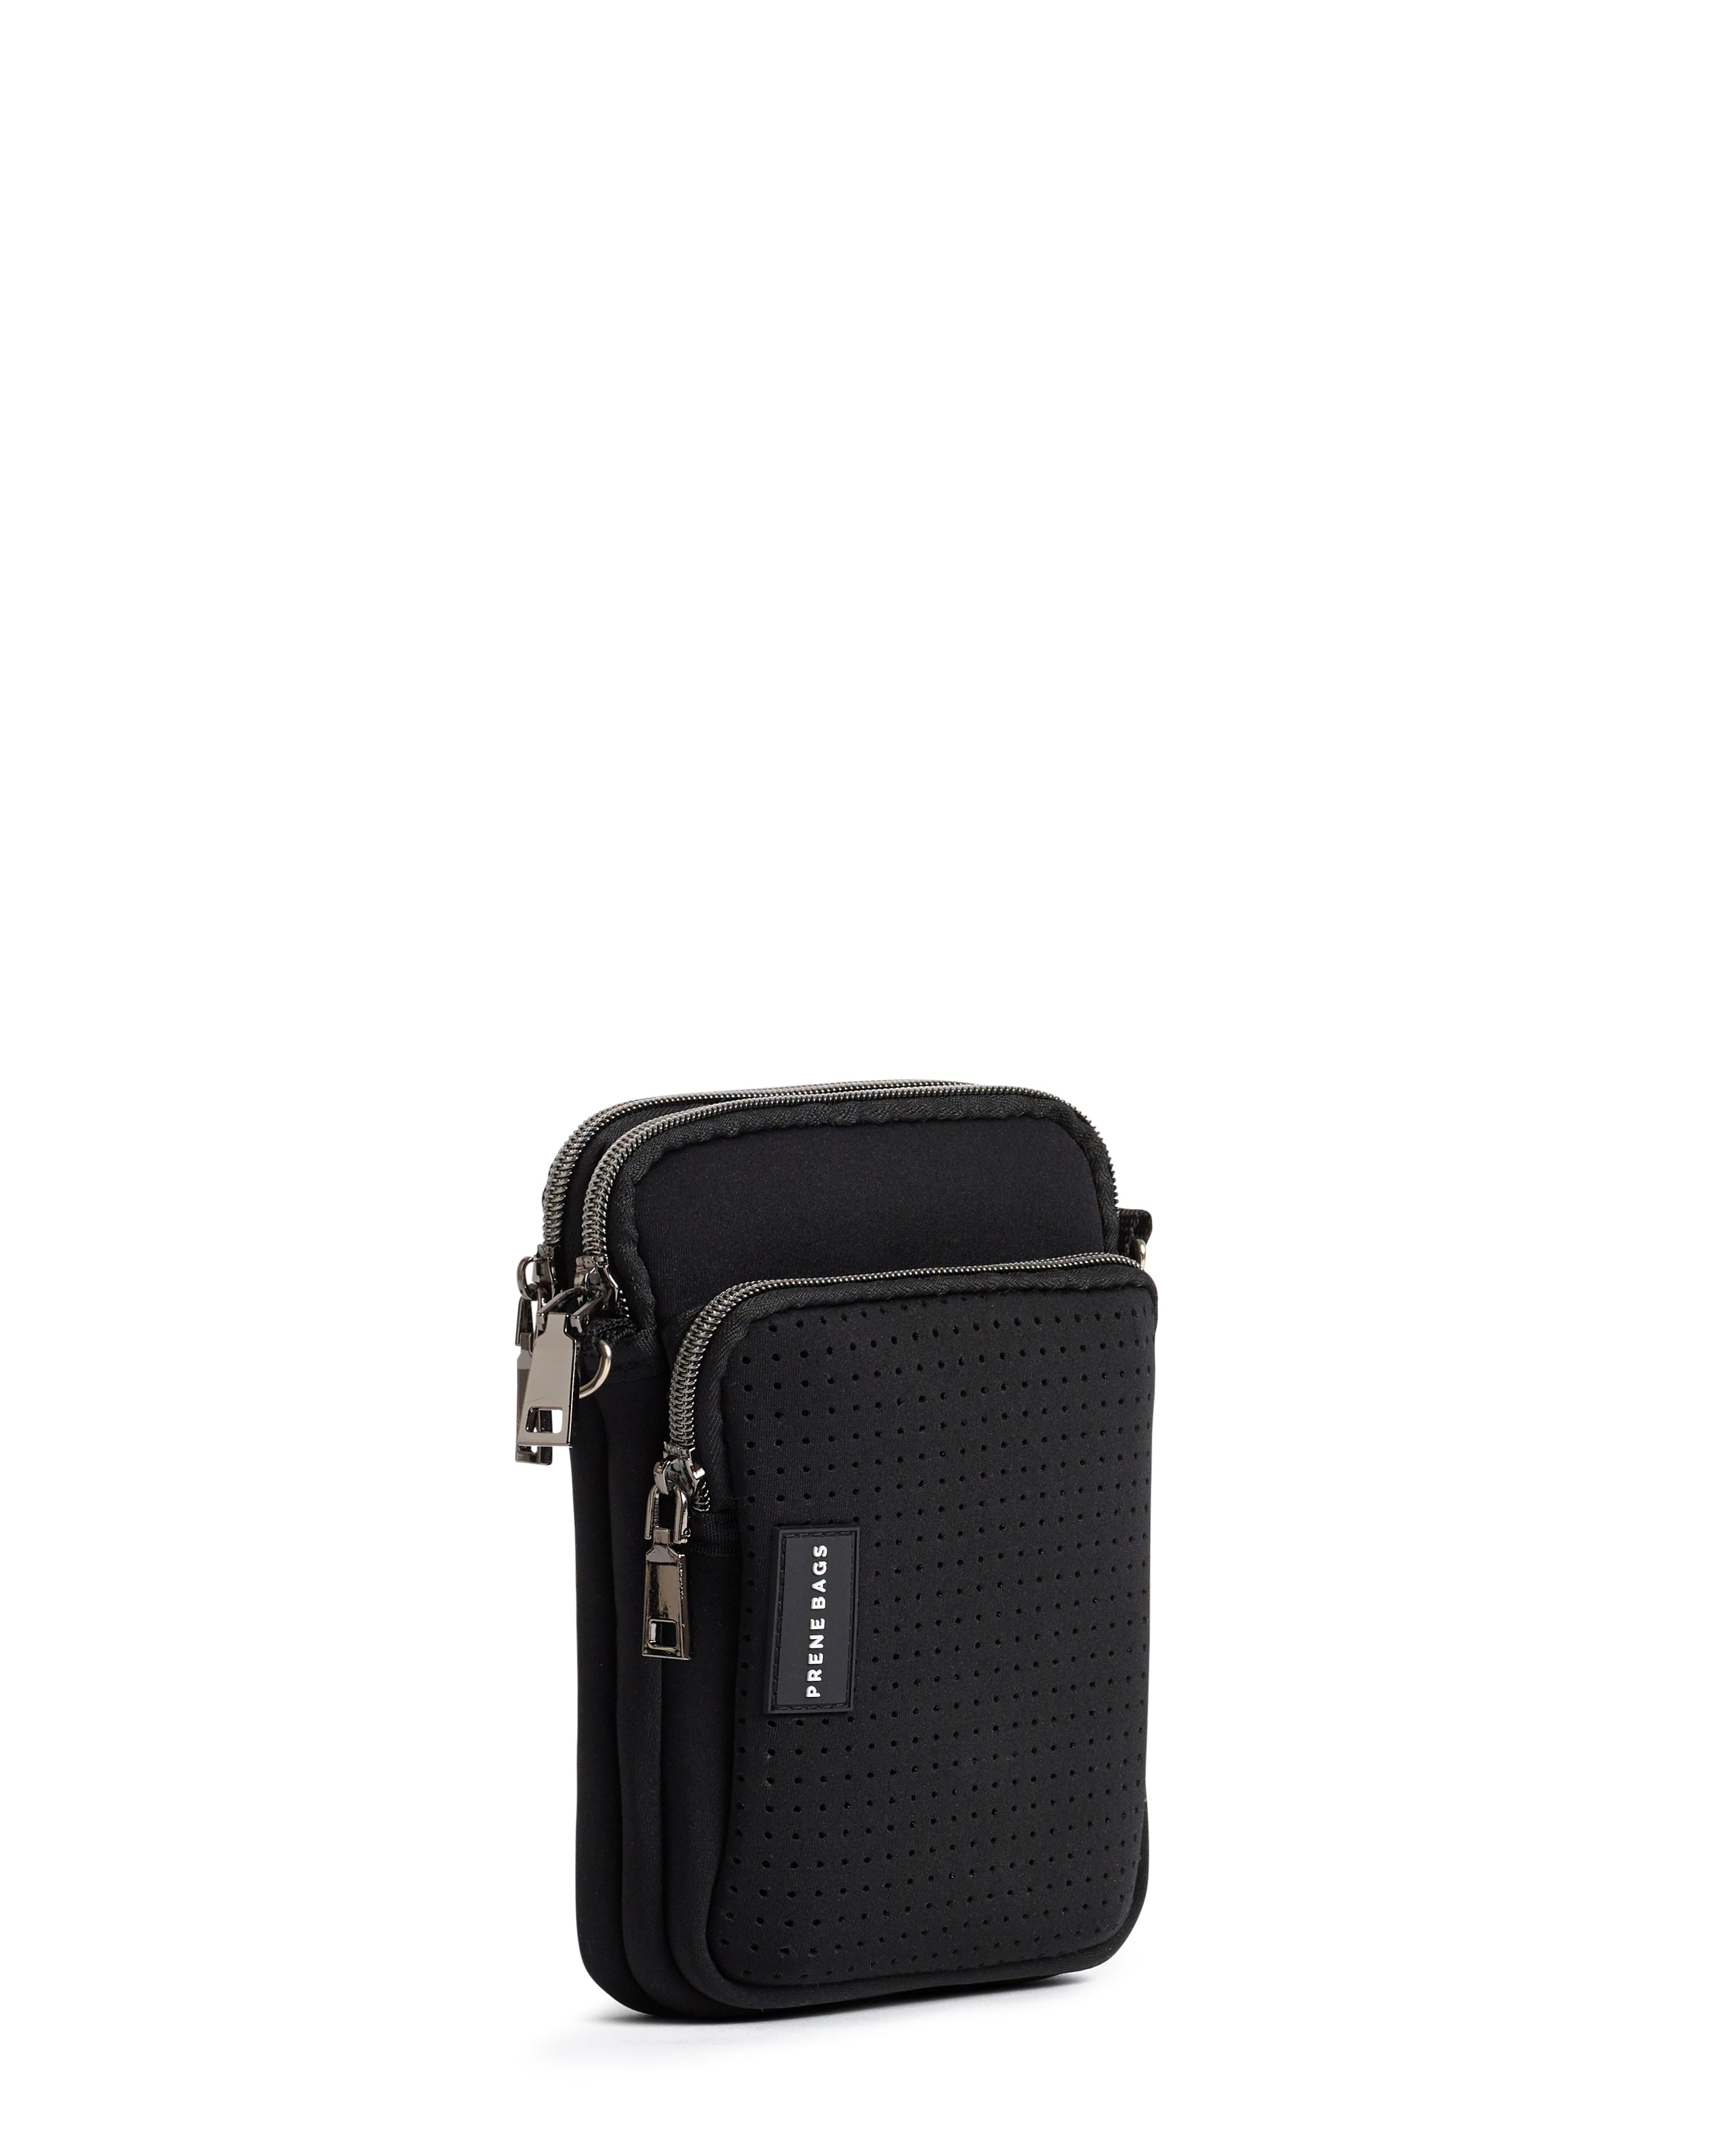 The Mimi Bag (BLACK) Neoprene Crossbody Bag